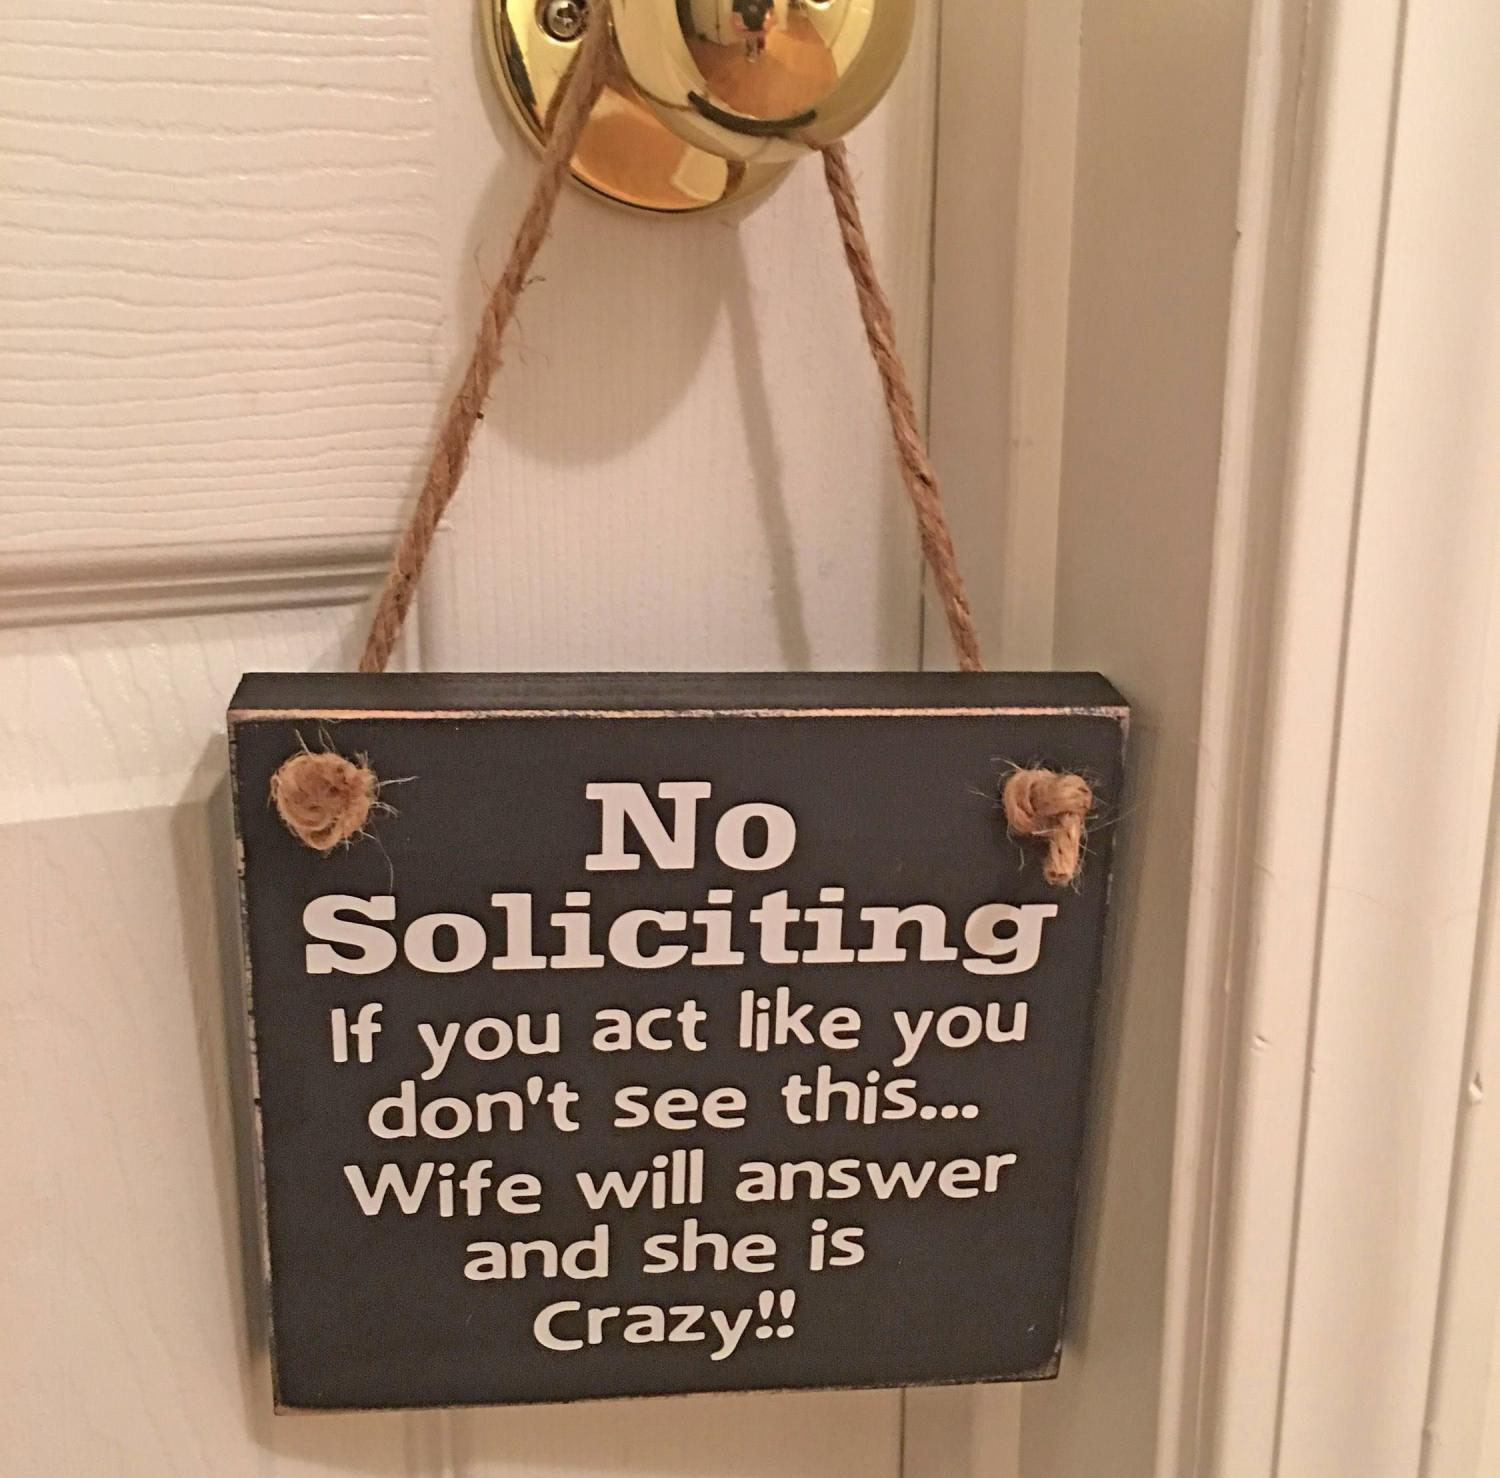 This Welcome Solicitors Sign Should Be On Every House That Hates Door To Door Sales People